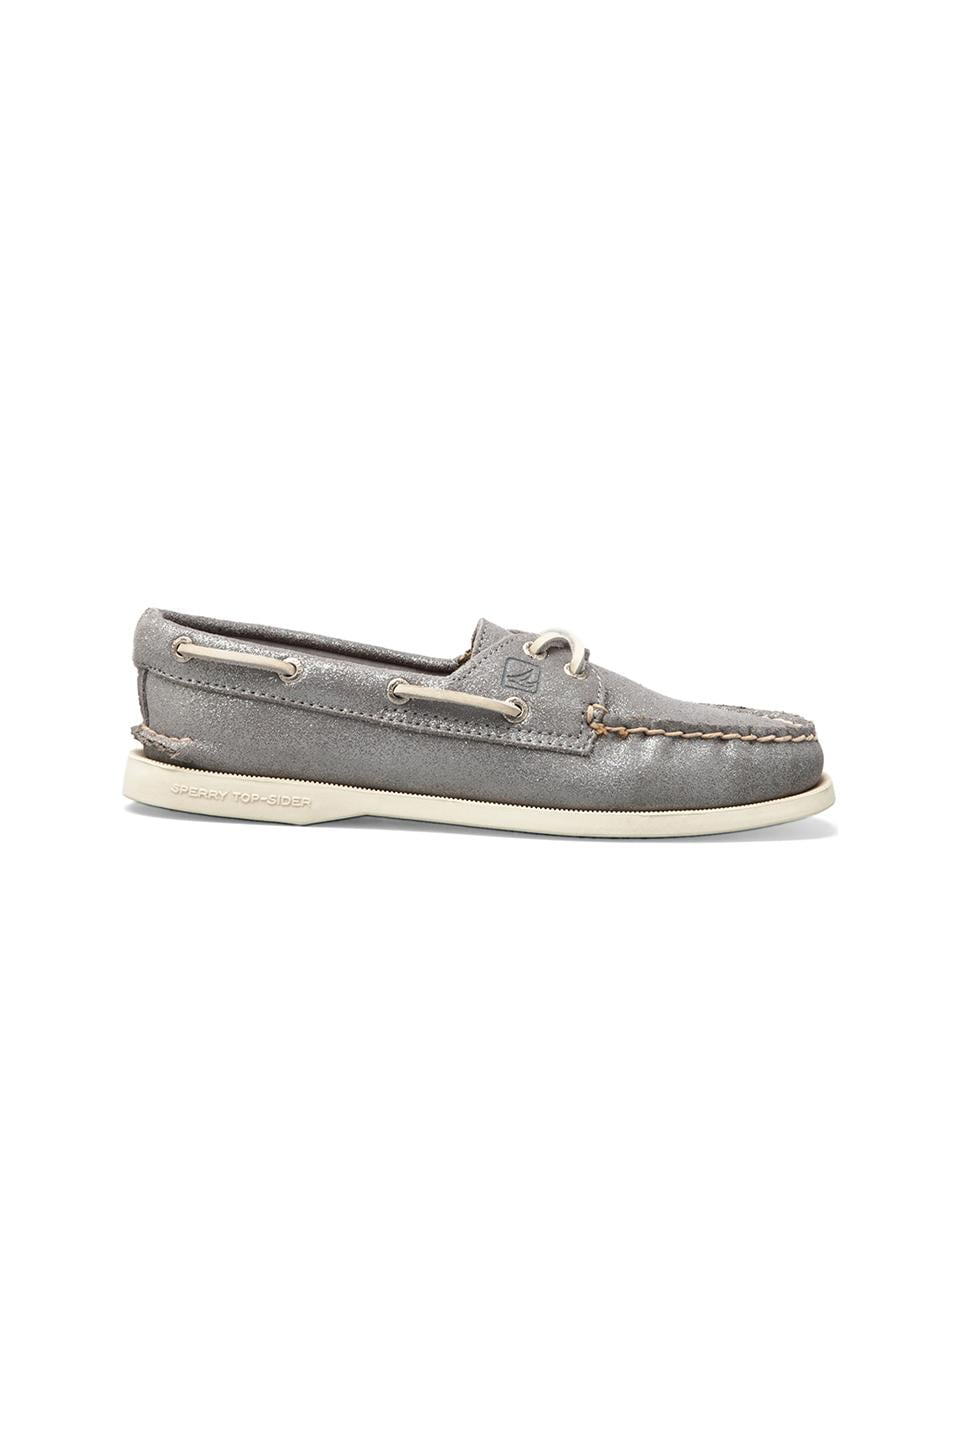 Sperry Top-Sider A/O 2-Eye in Silver Sparkle Suede